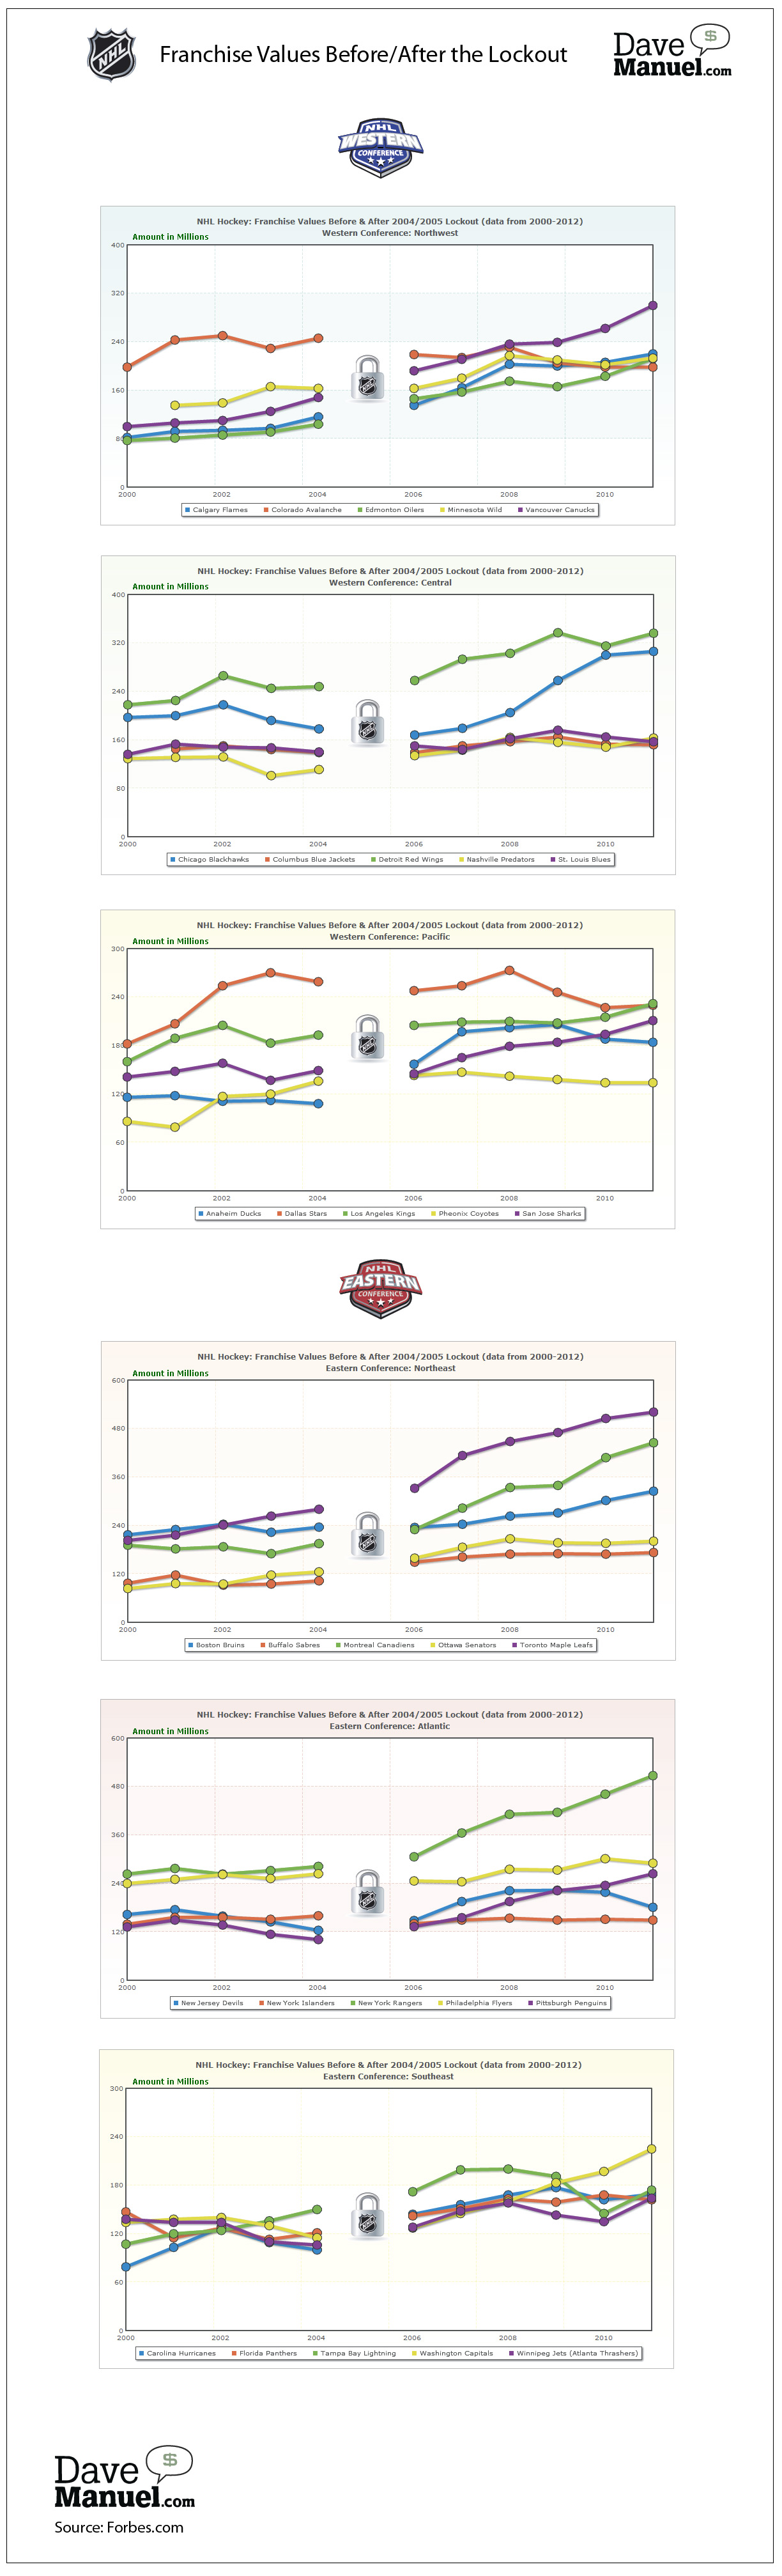 Infographic about growing NHL franchise values after the 2004/05 lockout - Compares charts of NHL teams and their values from 2000 - 2011 - Canucks, Rangers, Kings, Maple Leafs, Flames, Avalanche, Oilers, Wild, Blackhawks, Blue Jackets, Red Wings, Predators, Blues, Ducks, Stars, Coyotes, Sharks, Devils, Islanders, Flyers, Bruins, Sabres, Canadiens, Senators, Penguins, Hurricanes, Panthers, Lightning, Capitals, Thrashers